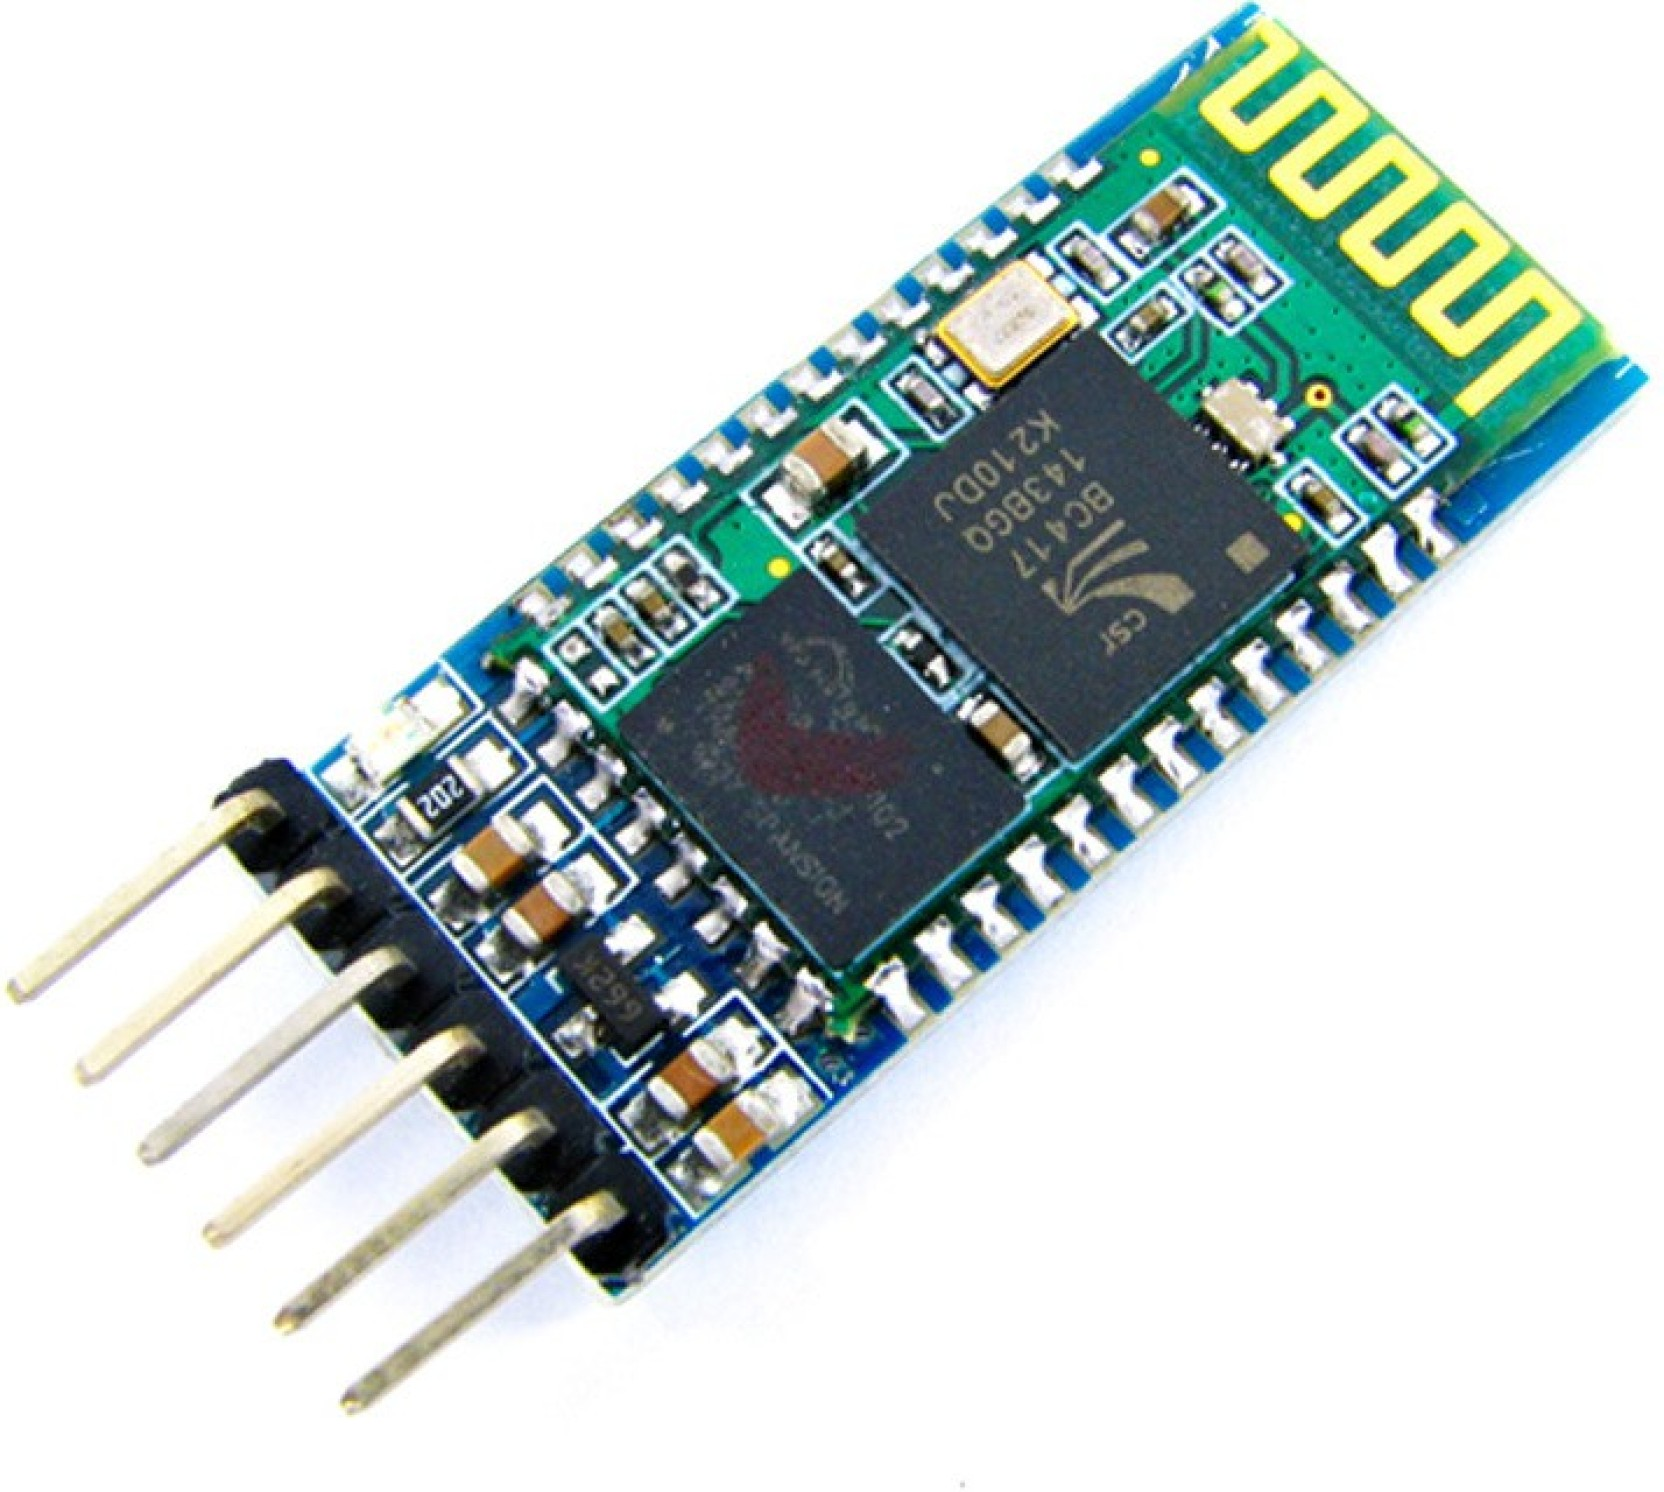 Rees52 Bluetooth Transceiver Module With Ttl Outputs Hc05 Remote Controlled Toy Car Circuit Add To Cart